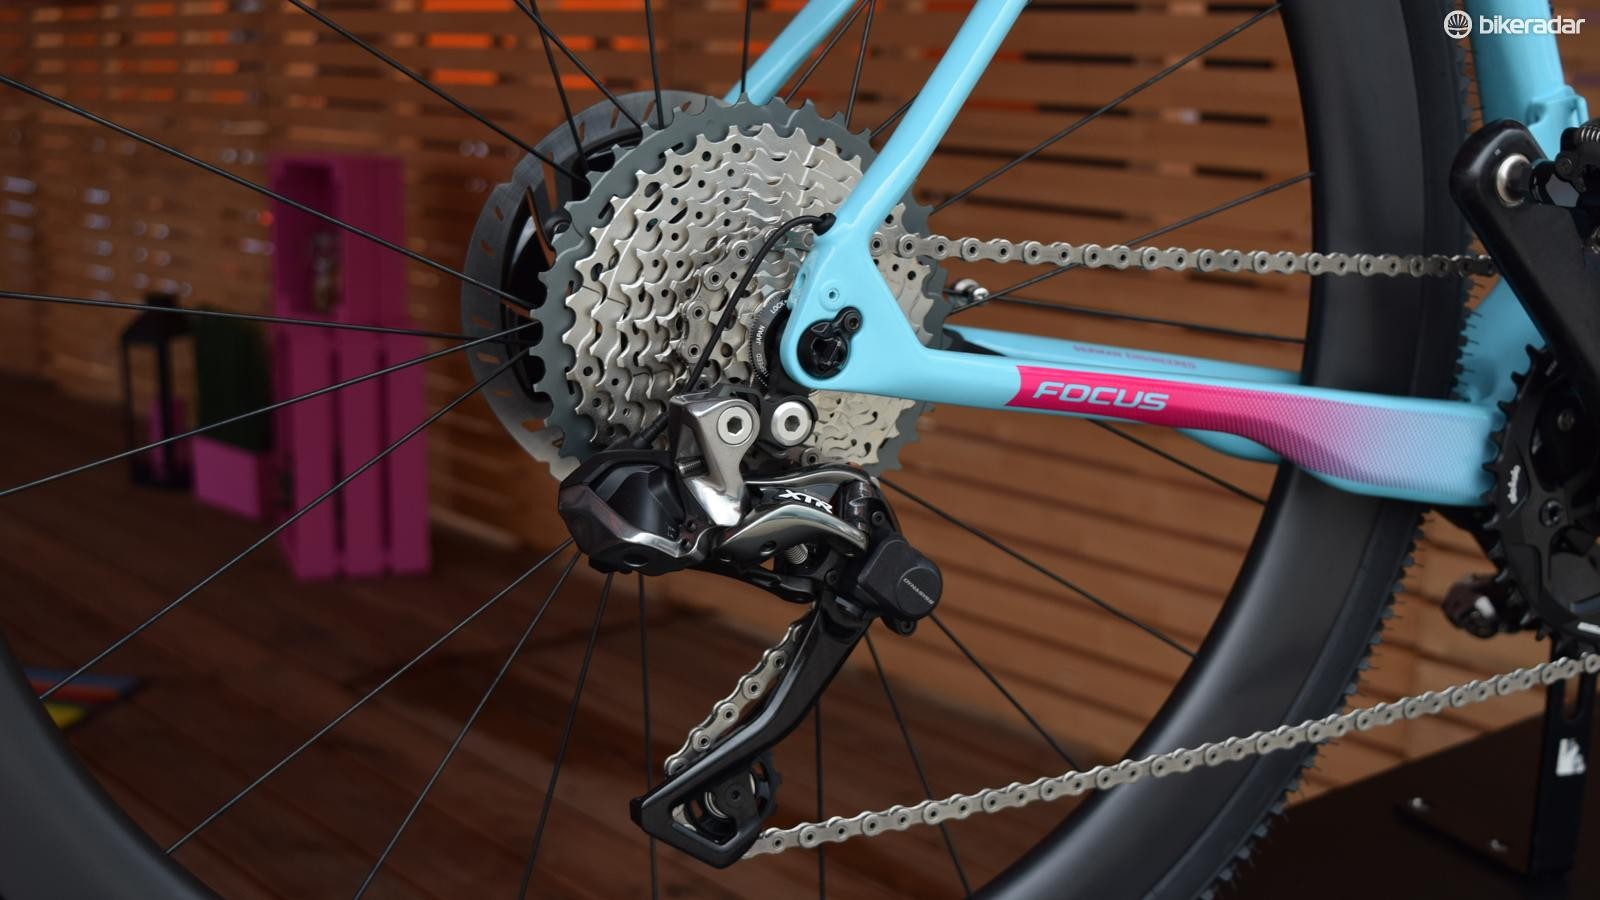 The XTR Di2 rear derailleur is needed to accommodate the 11-40t cassette